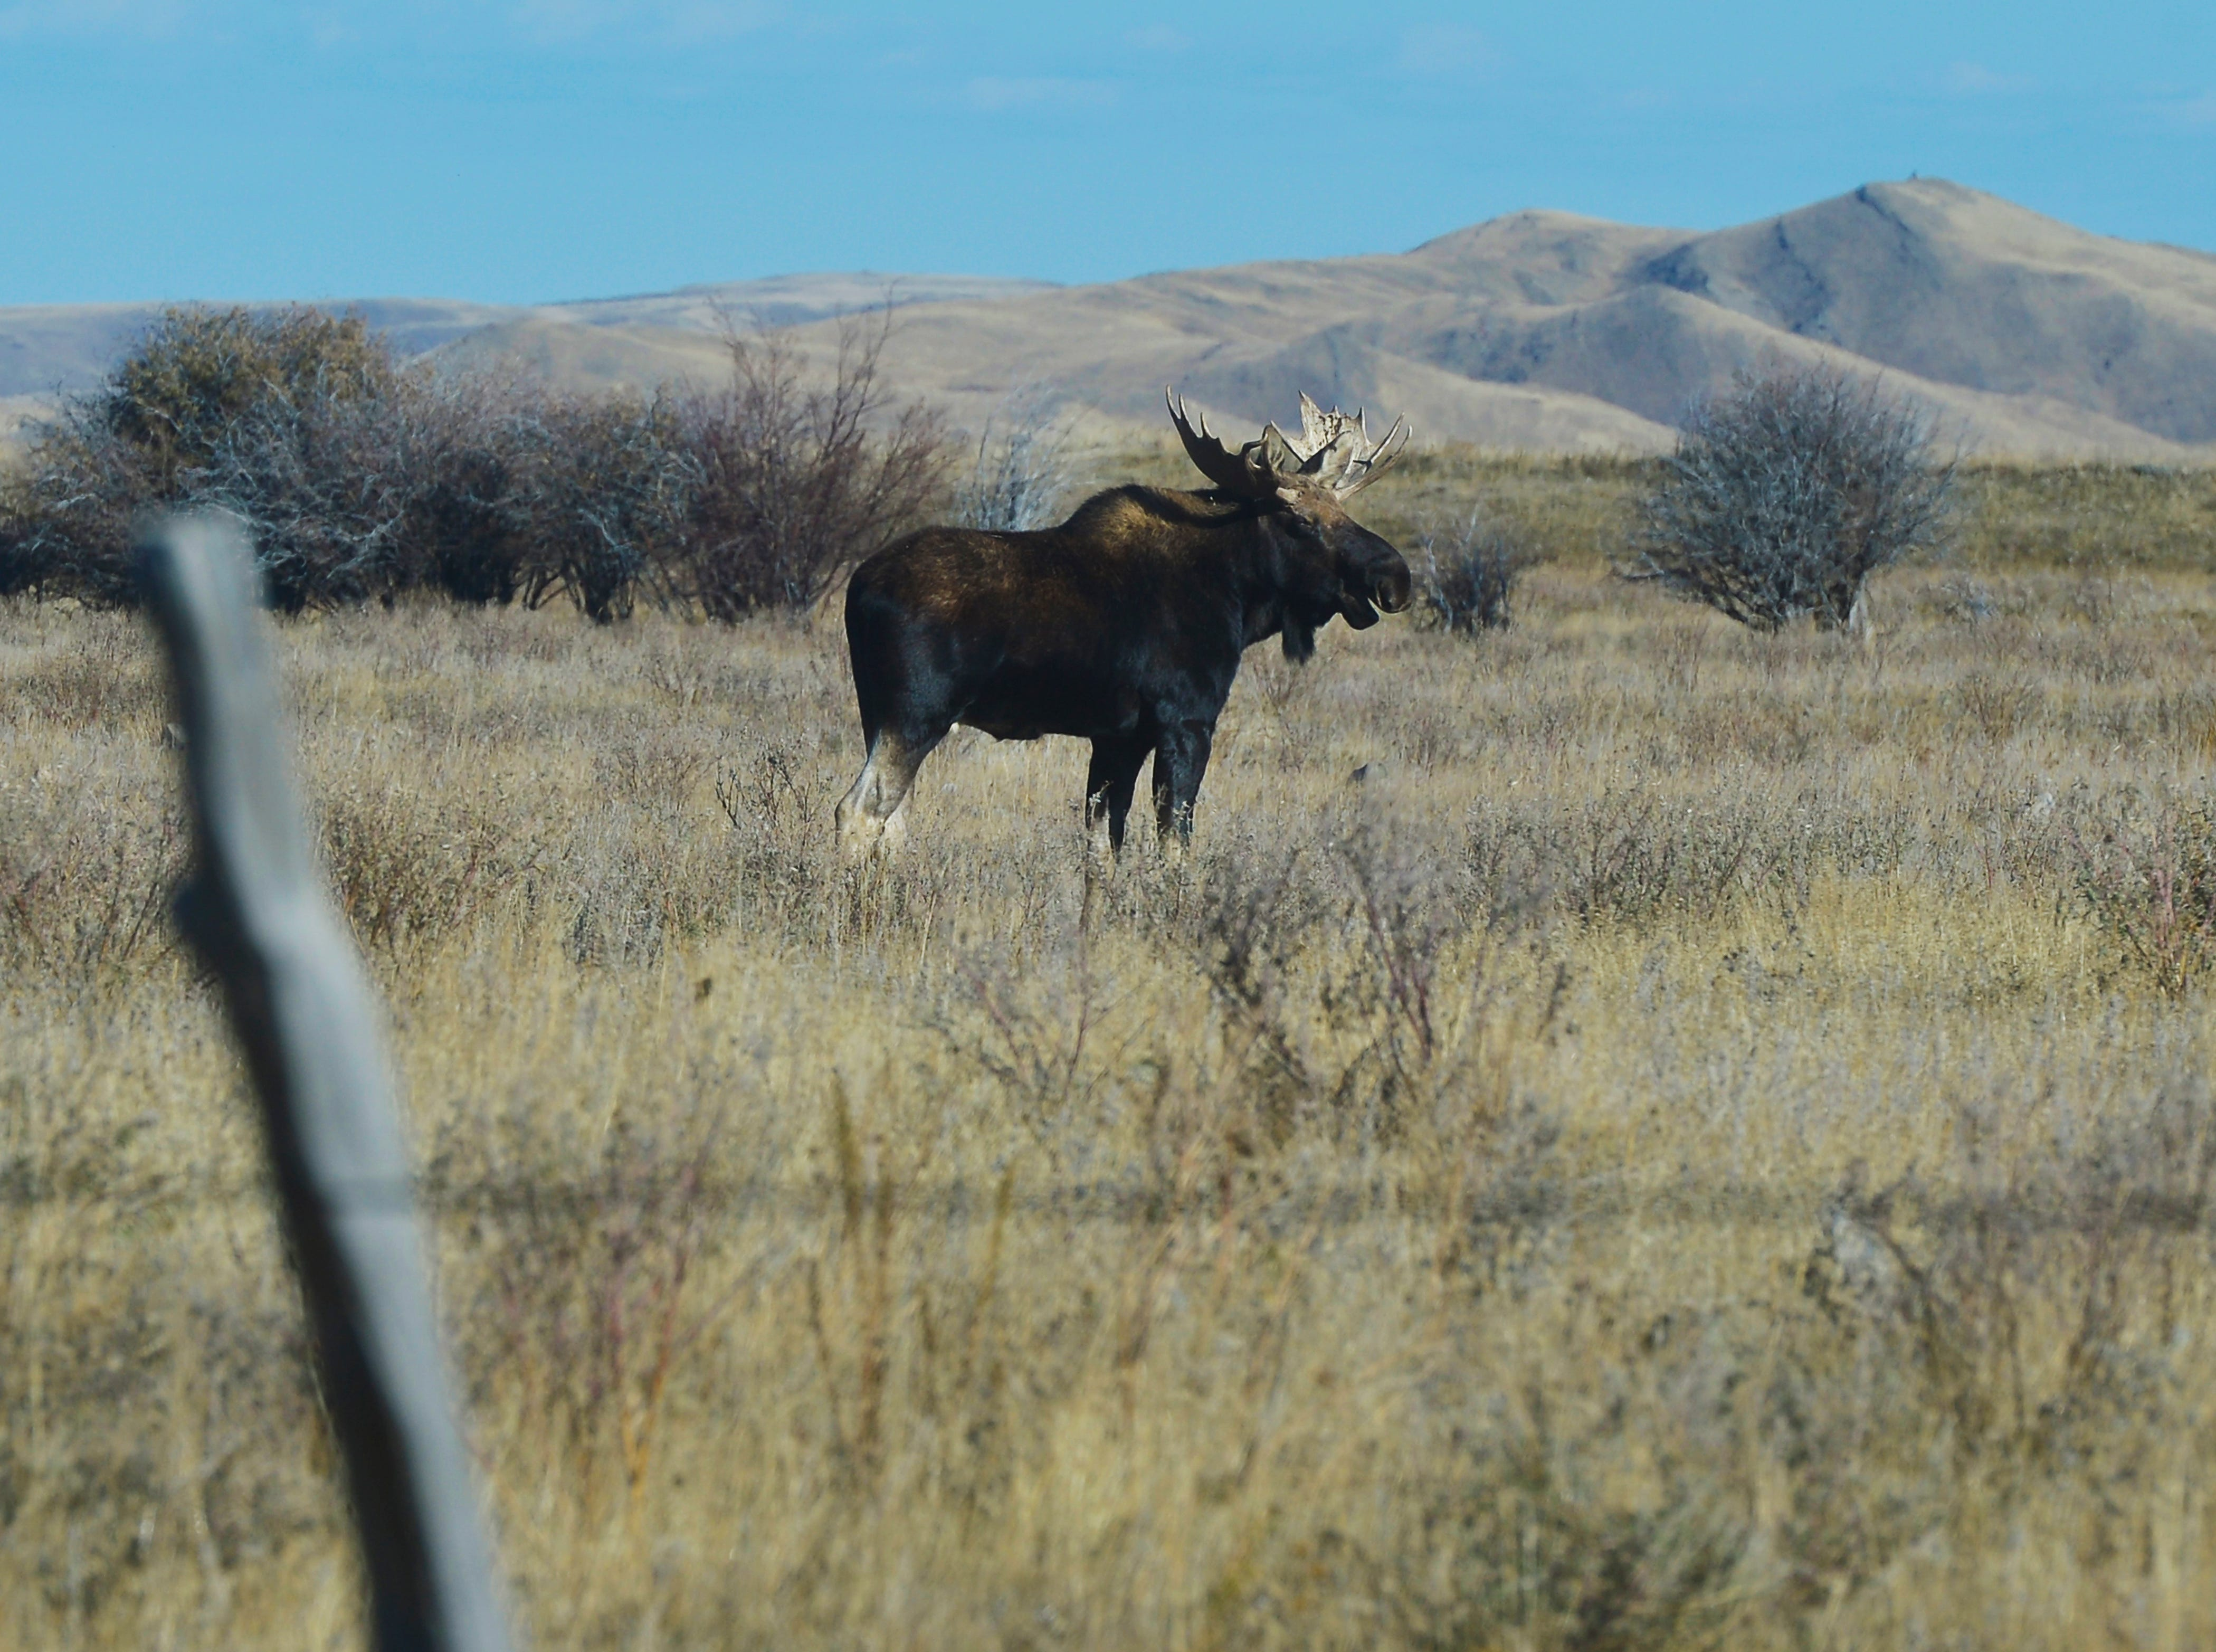 A bull moose feeds in a field at the foot of the Crazy Mountains near Two Dot.